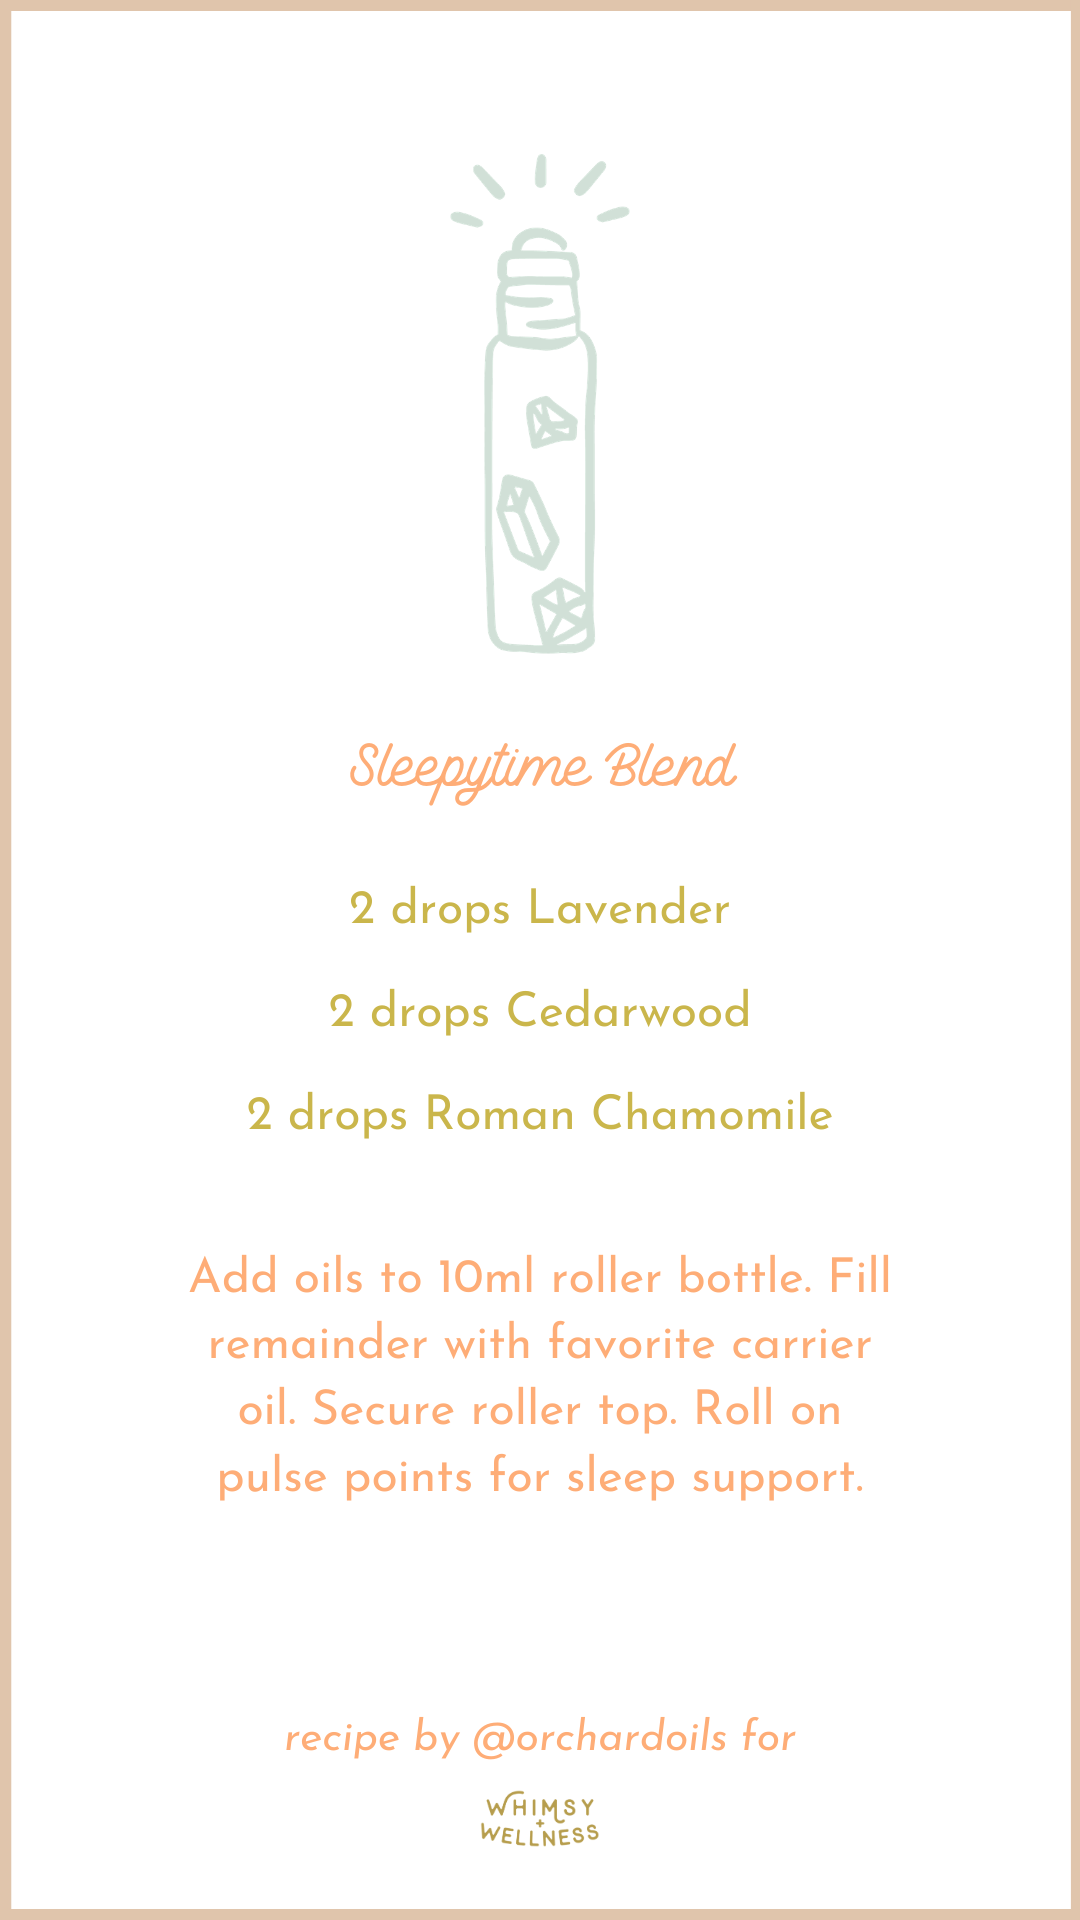 sleepytime roller bottle blend with essential oils and fairytale collection whimsy + wellness